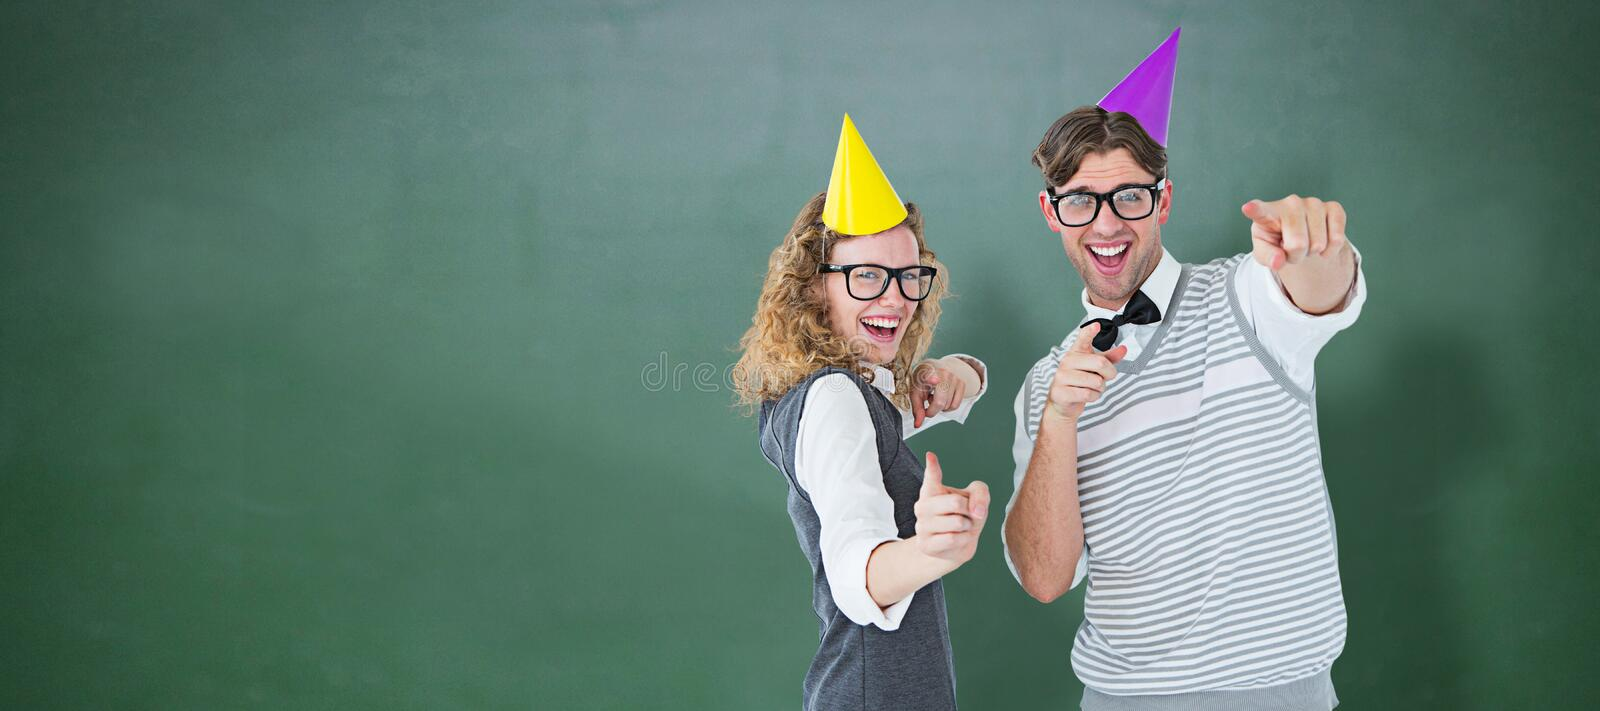 Composite image of happy geeky hispser couple dancing with party hat. Happy geeky hispser couple dancing with party hat against green chalkboard stock photography